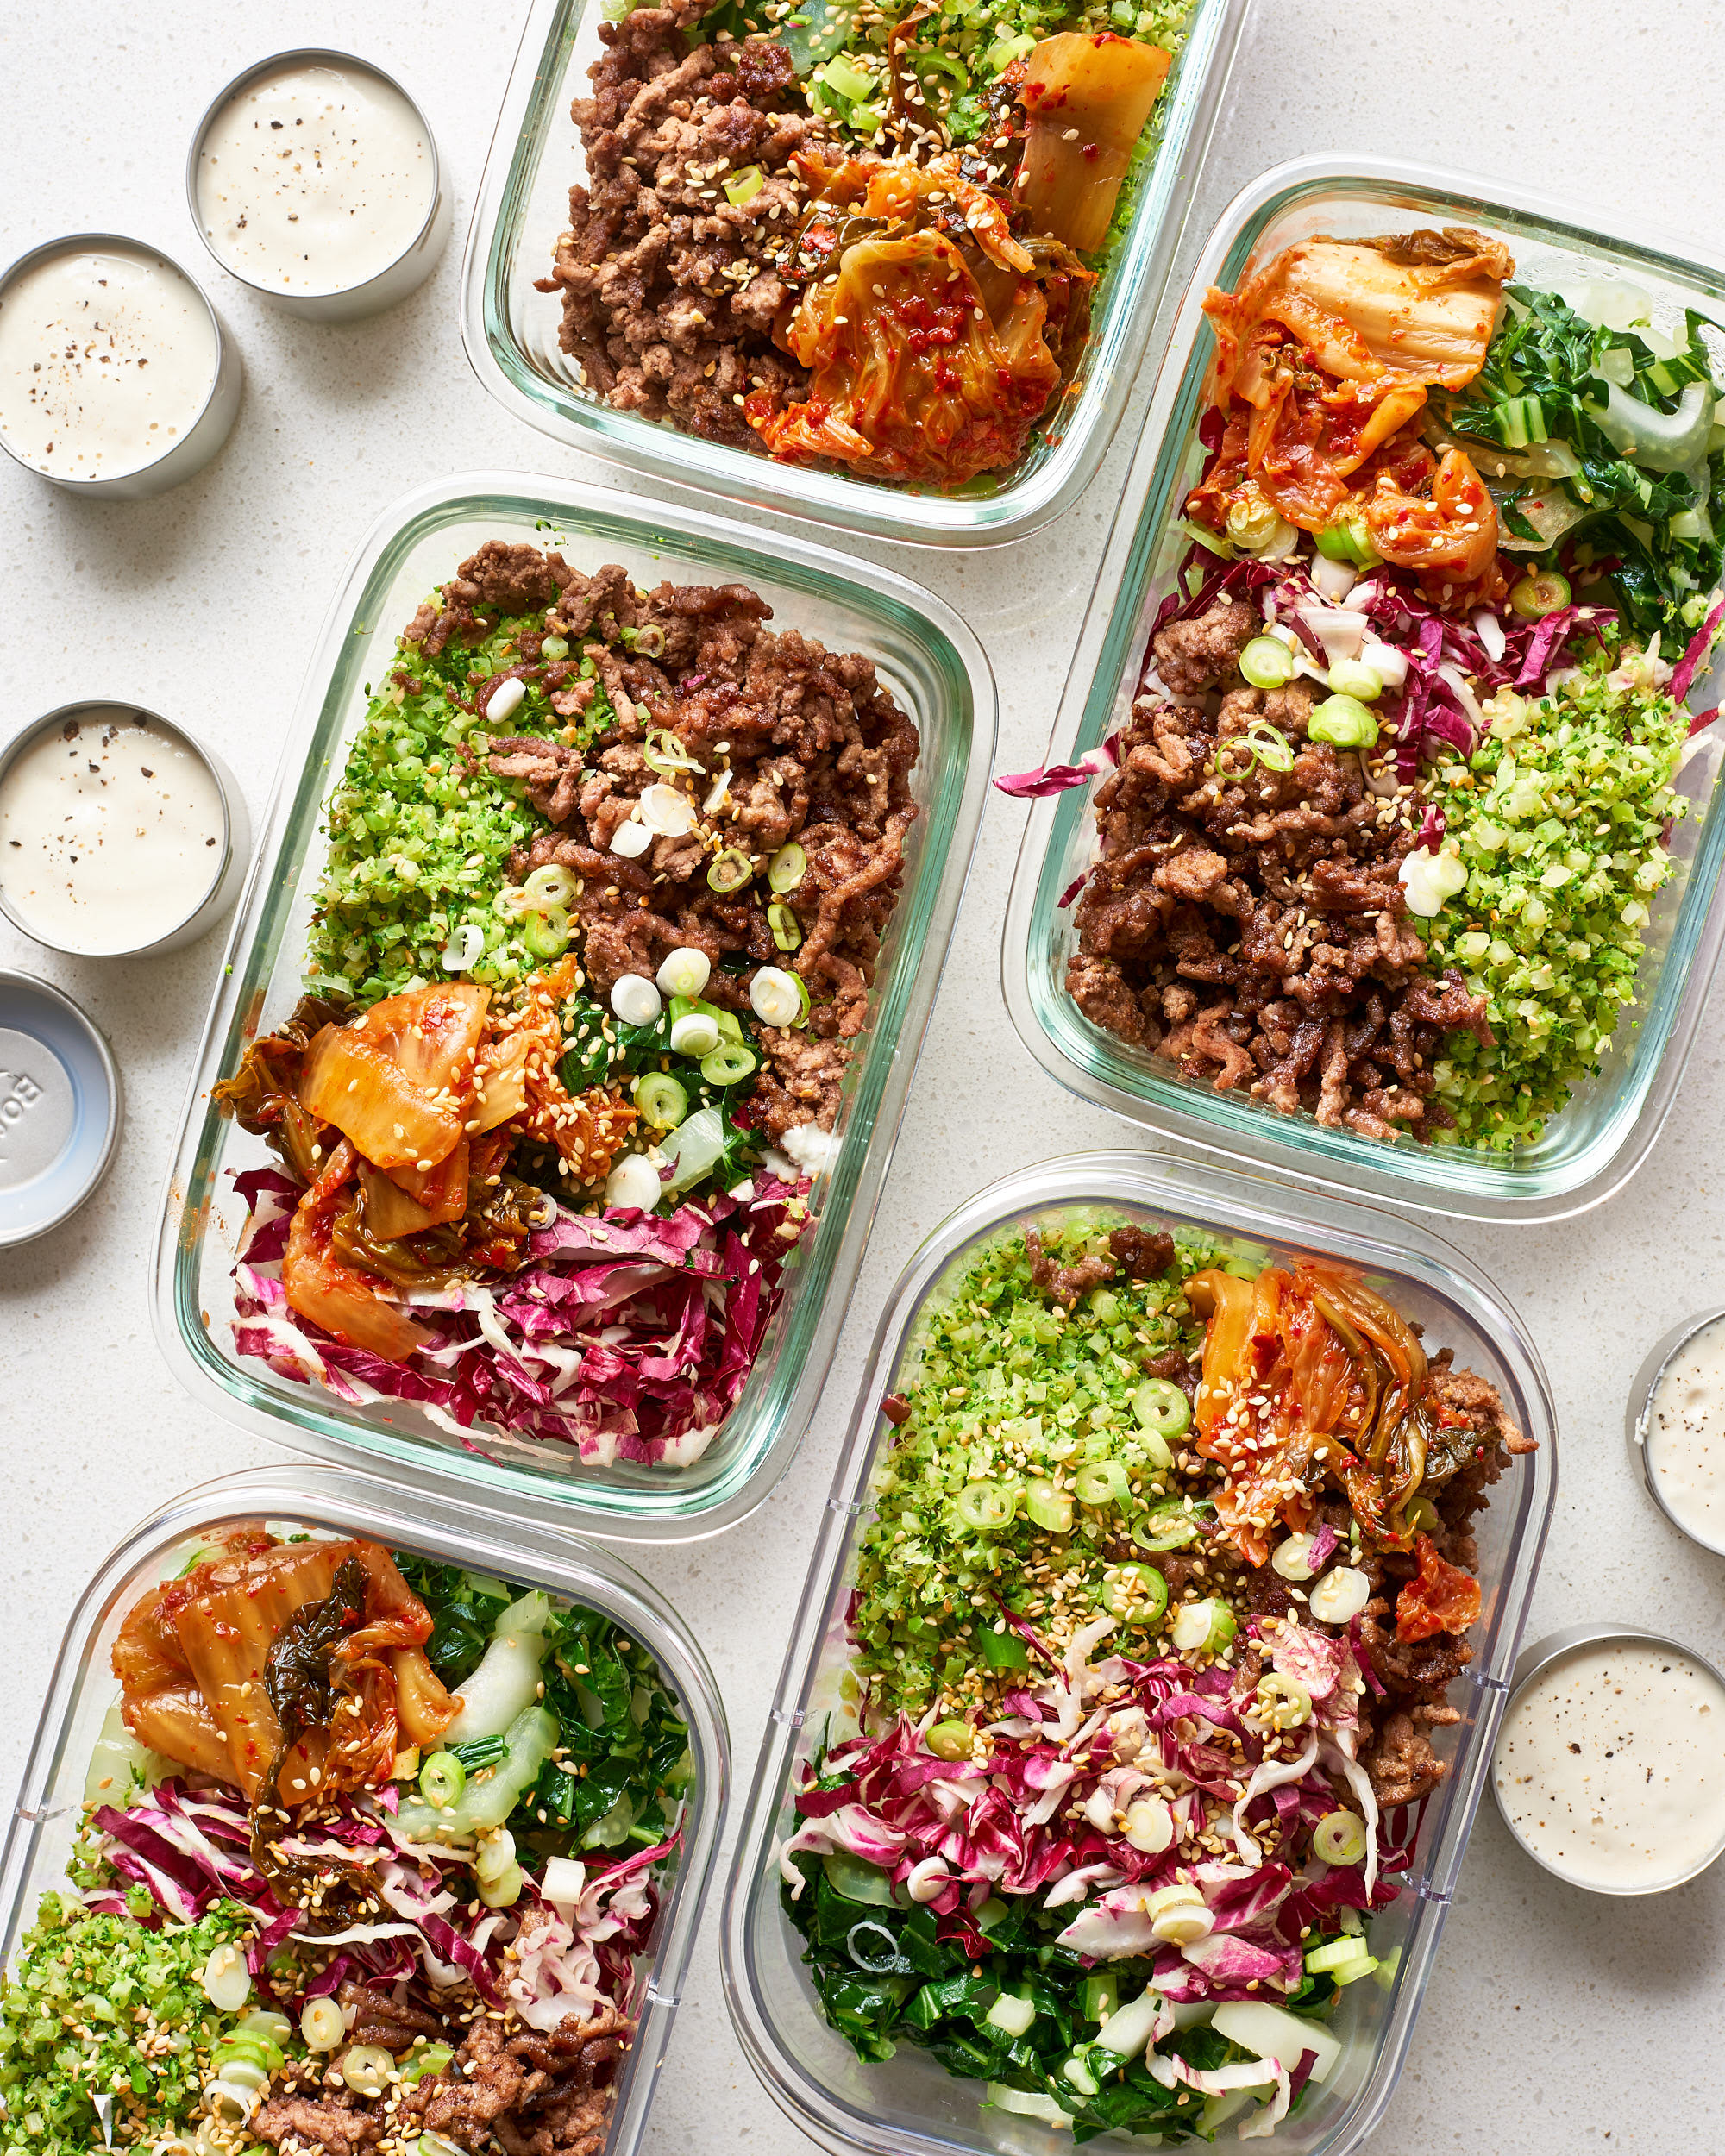 Low-Carb Meal Prep: A Week Of Meals